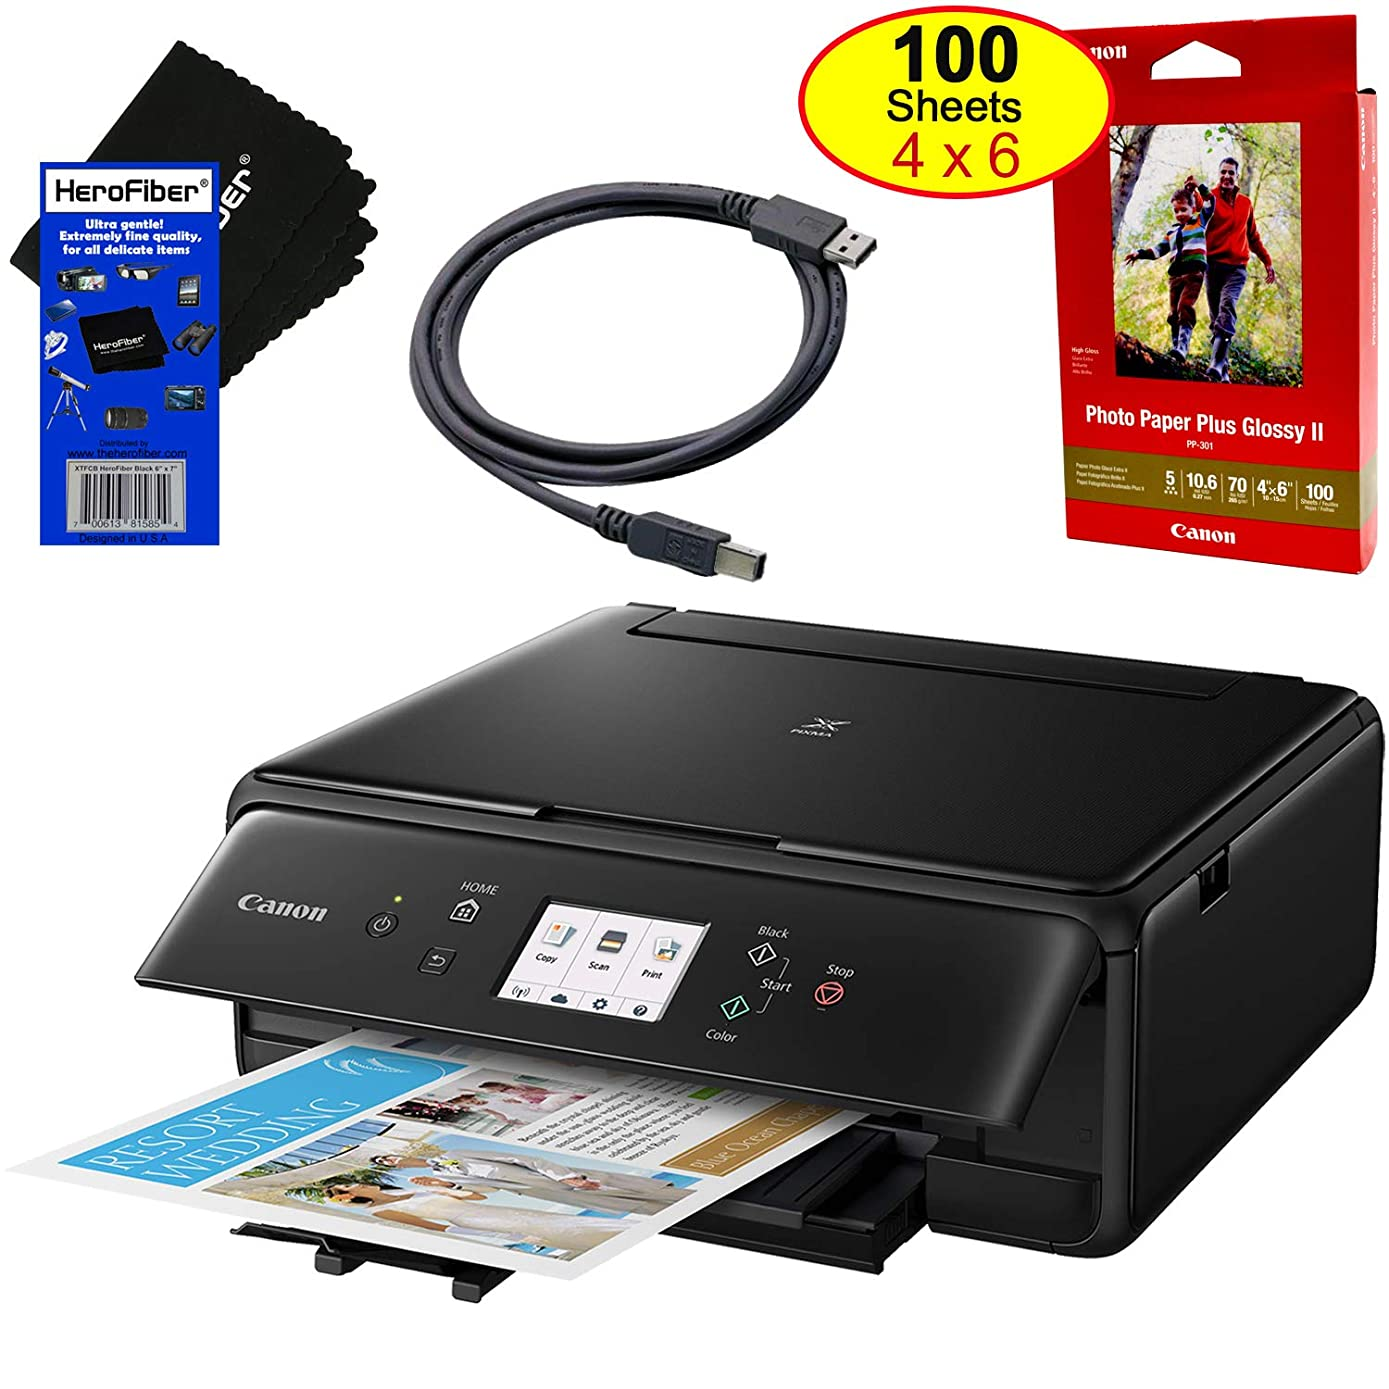 Canon 4800 x 1200dpi Wireless Inkjet All-in one Printer (Black) with Scan, Copy, Mobile Printing, Airprint & Google Cloud + Set of Ink Tanks + Photo Paper (100 Pack) + USB Printer Cable + HeroFiber